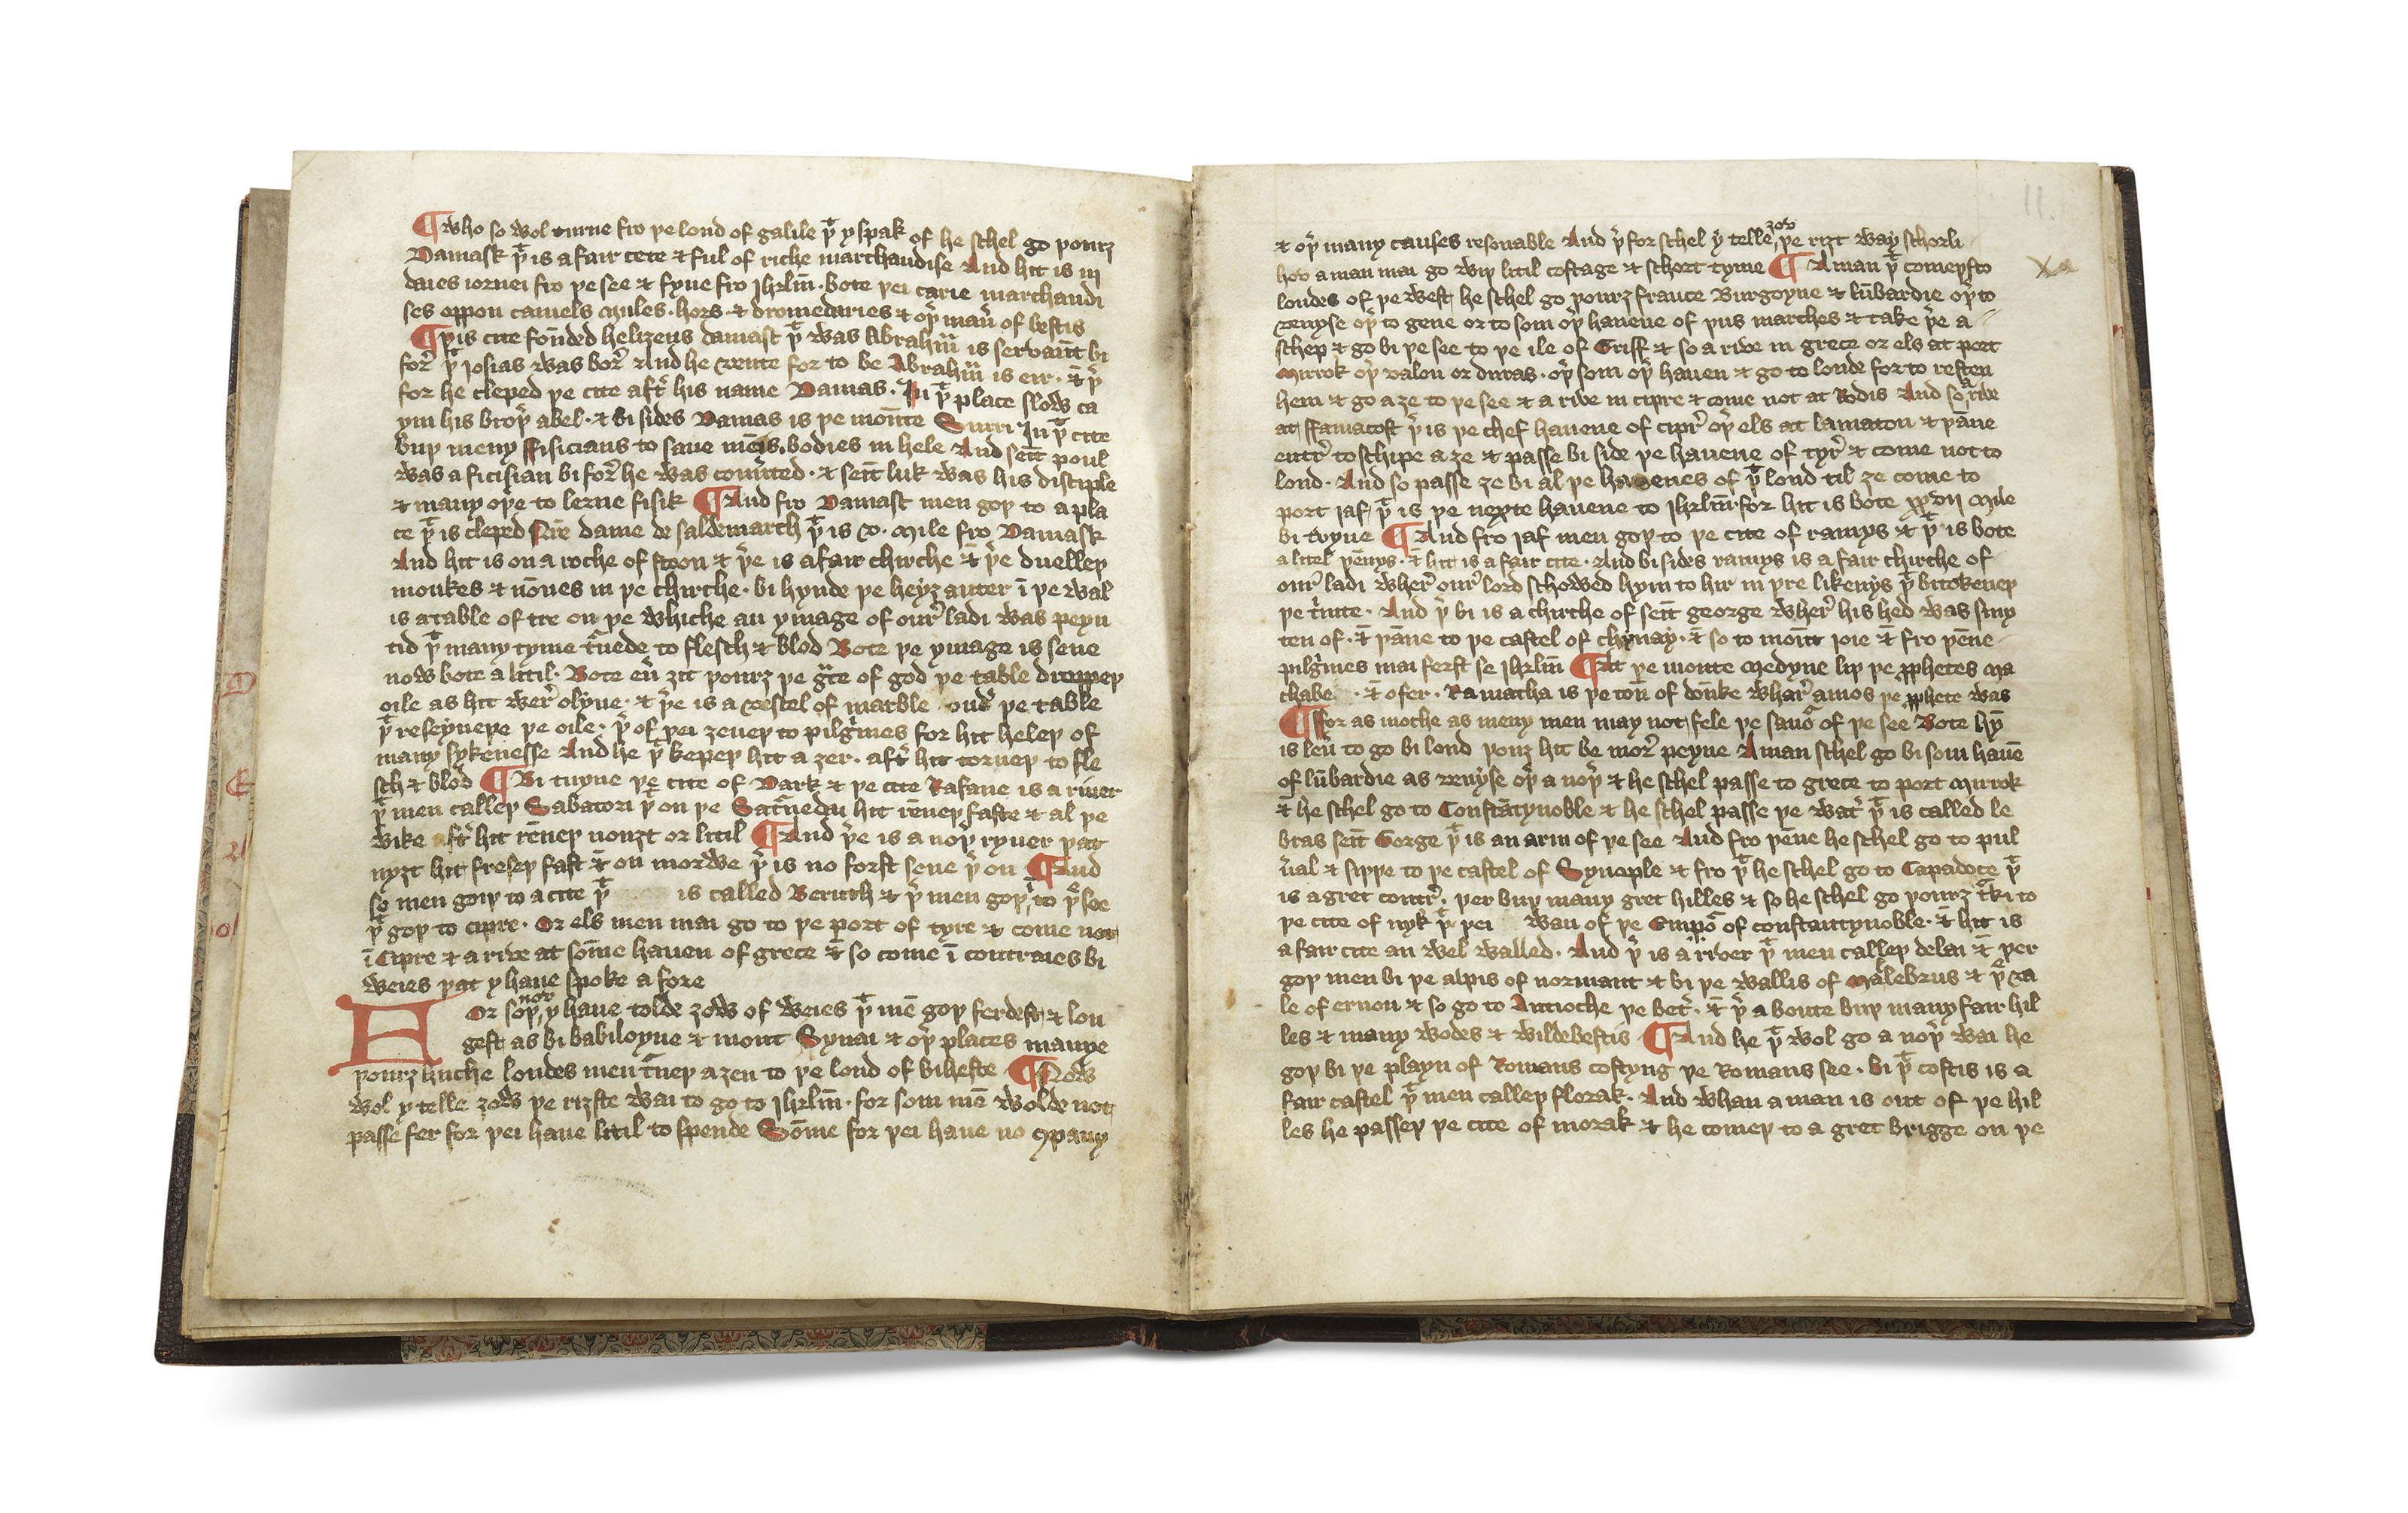 The Book of John Mandeville, in Middle English, decorated manuscript on vellum [England, second half 15th century]